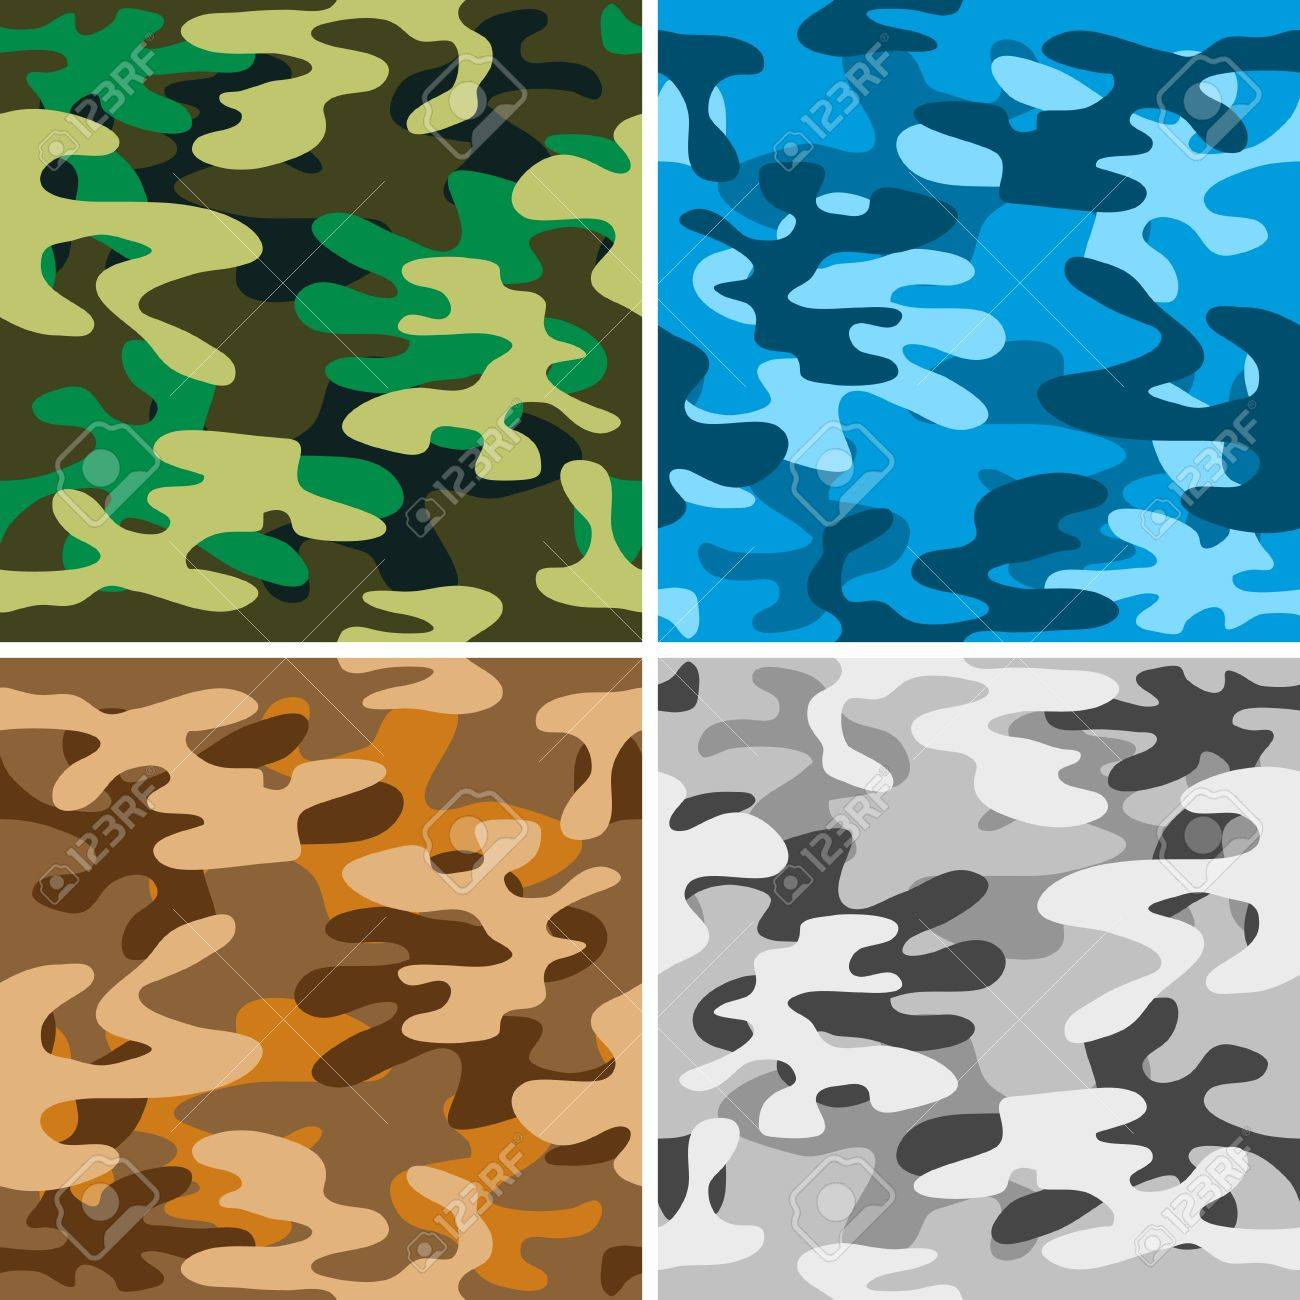 Camouflage backgrounds(42).jpg Stock Vector - 11104501